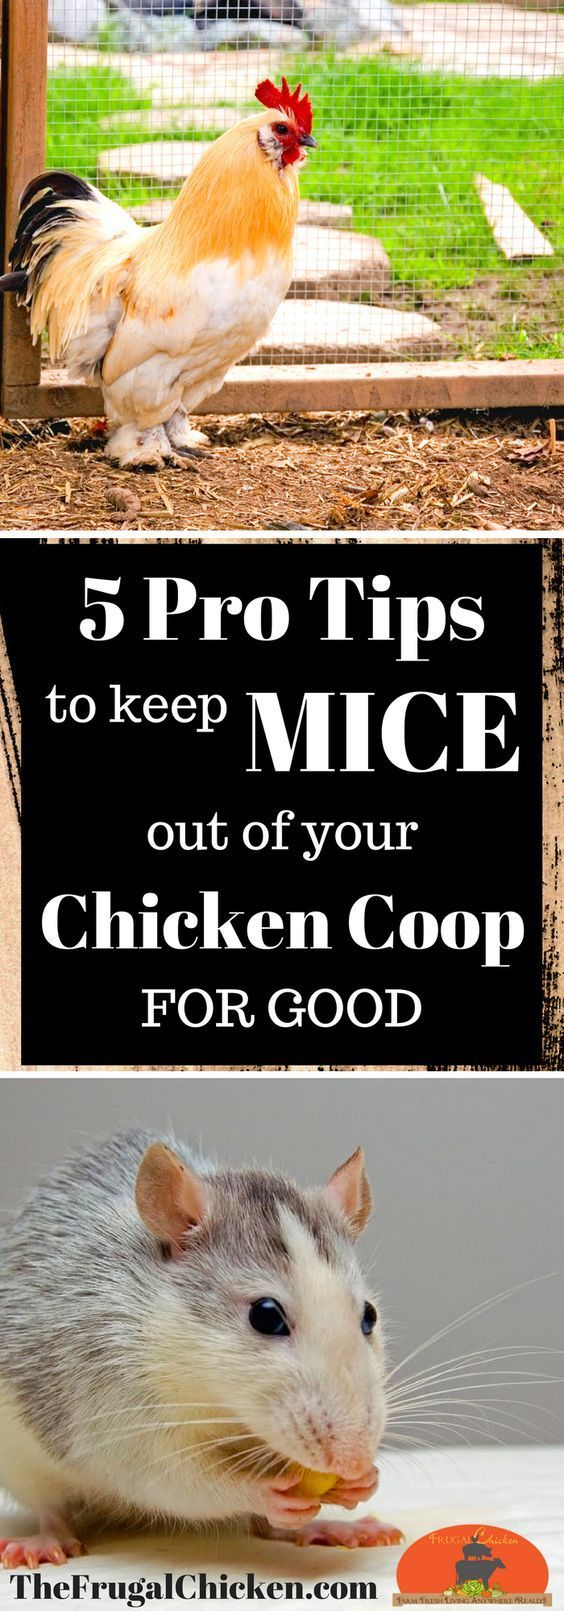 Mice in your chicken coop can cause all kinds of health and sanitary issues - not to mention freeloading off your flock's feed! Here's 5 pro tips you can use TODAY to keep the mice at bay!